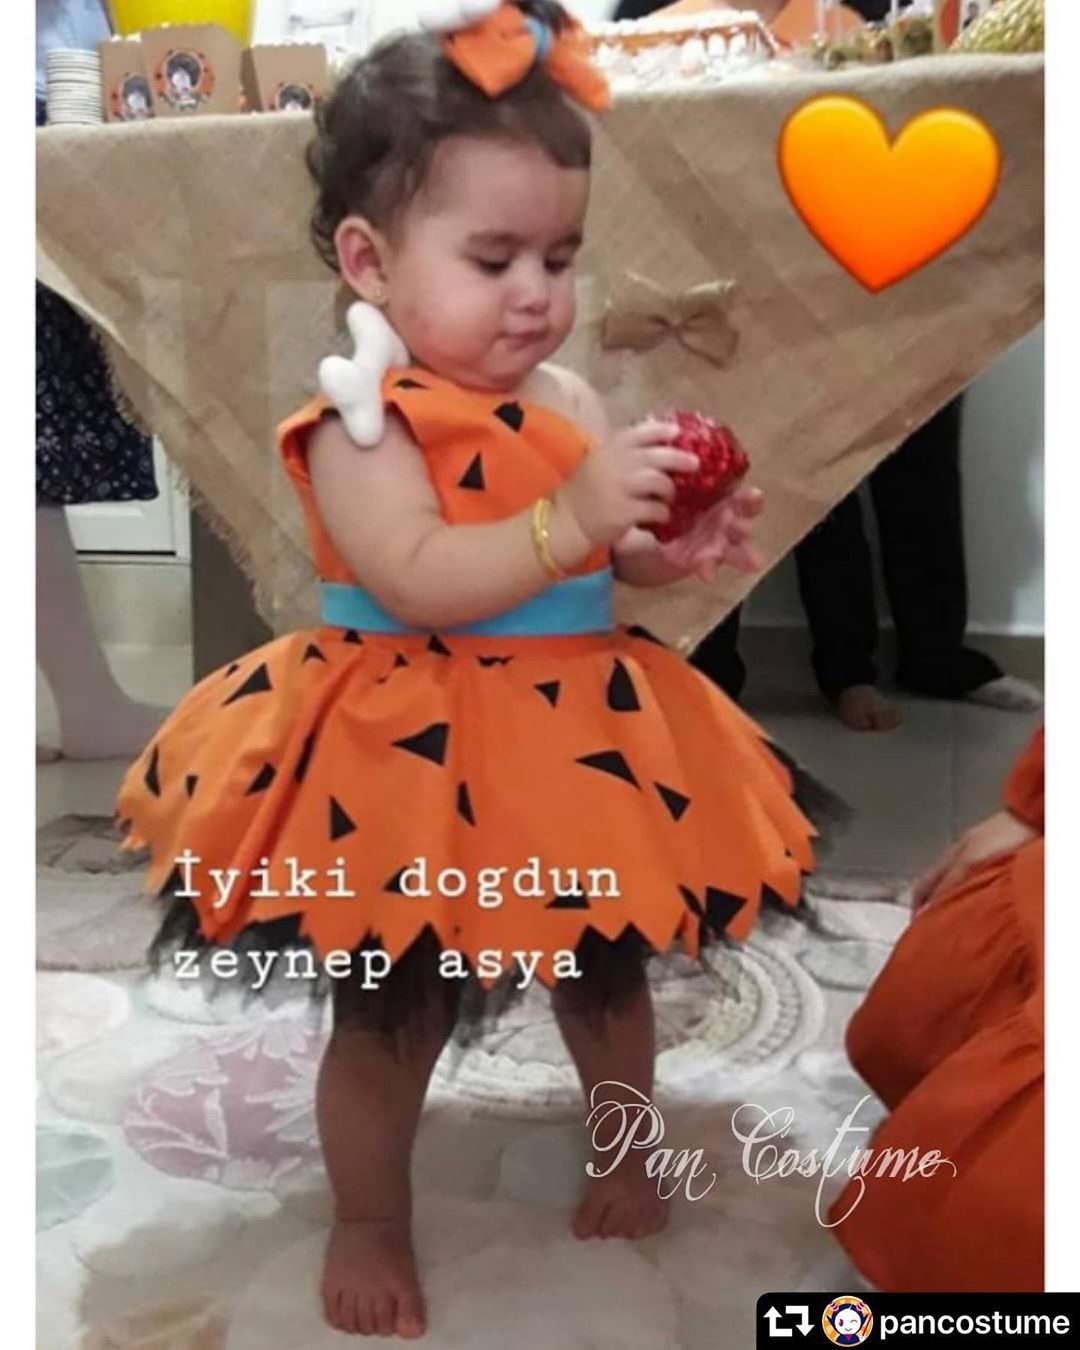 "Fancy Costumes & Dresses on Instagram: ""� Follow @pancostume_en For More! � �www.pancostume.com � Worldwide Free shipping.� Handmade/own designed/custom sewn luxury girls'…"""